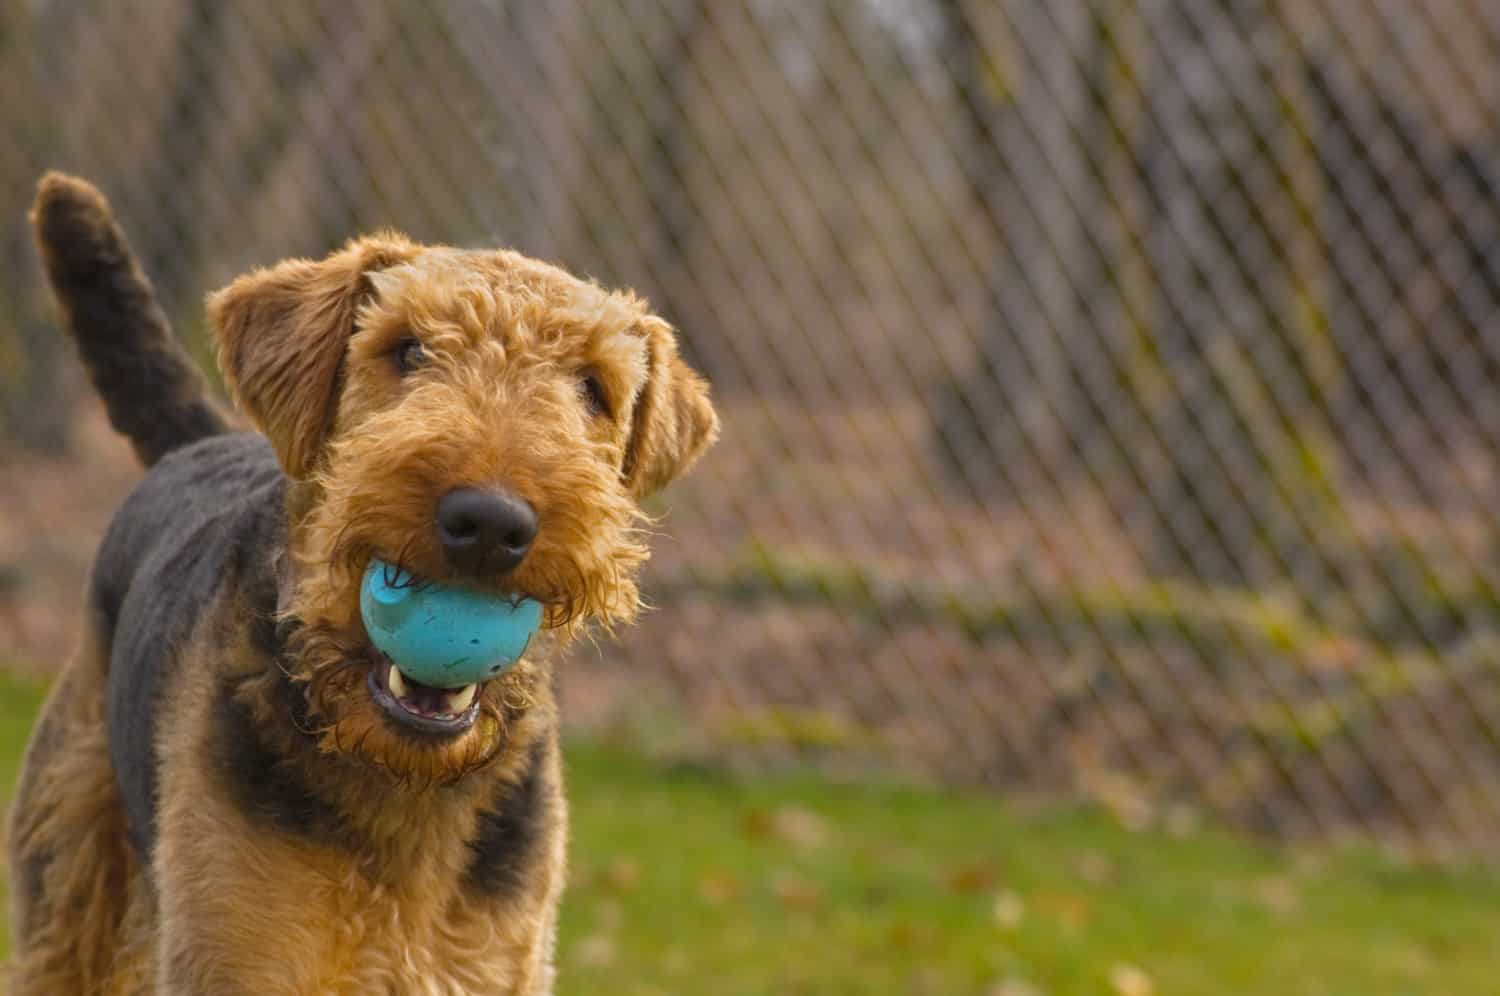 Airedale Terrier dog with ball in his mouth at a theme park kennel